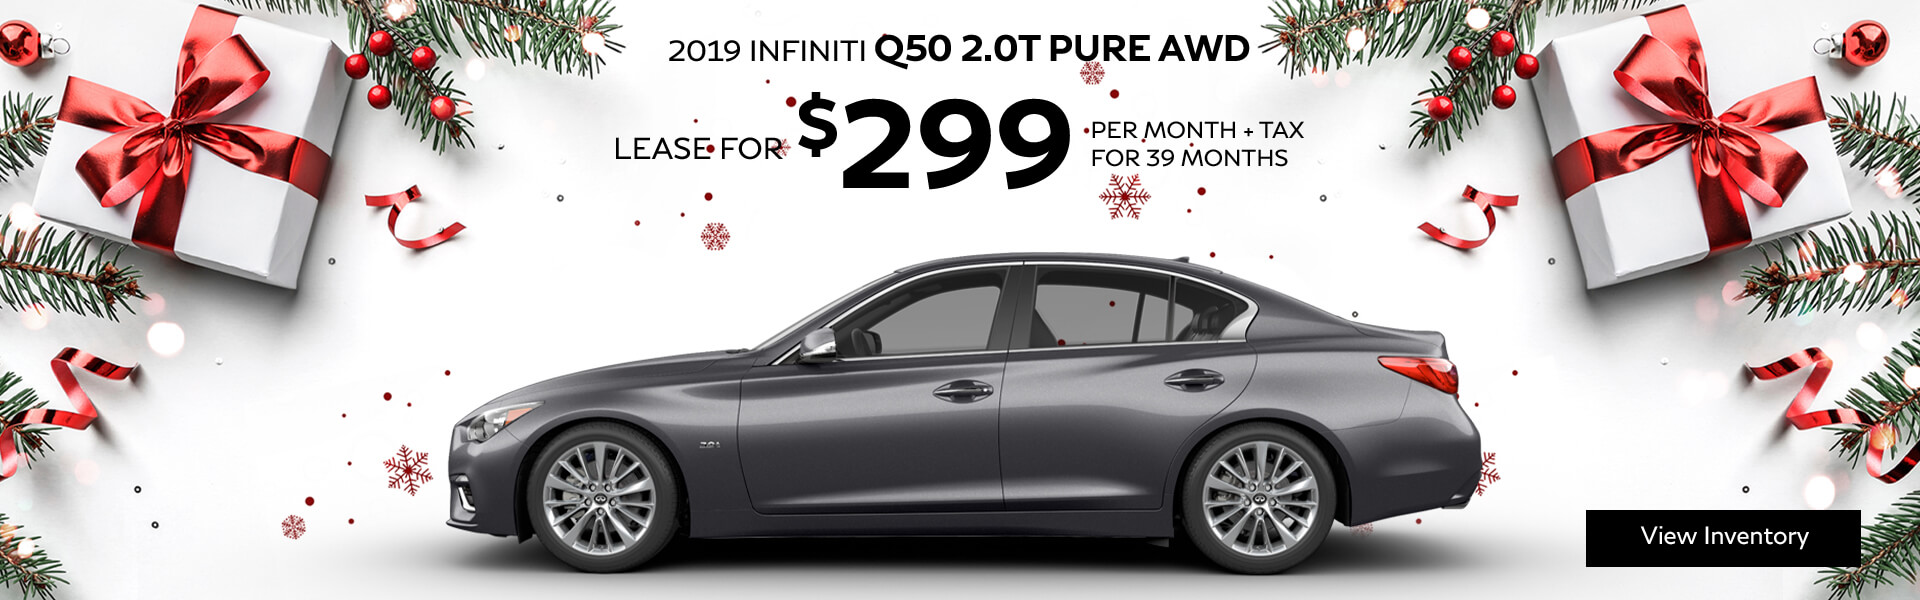 Q50 PURE - Lease for $299